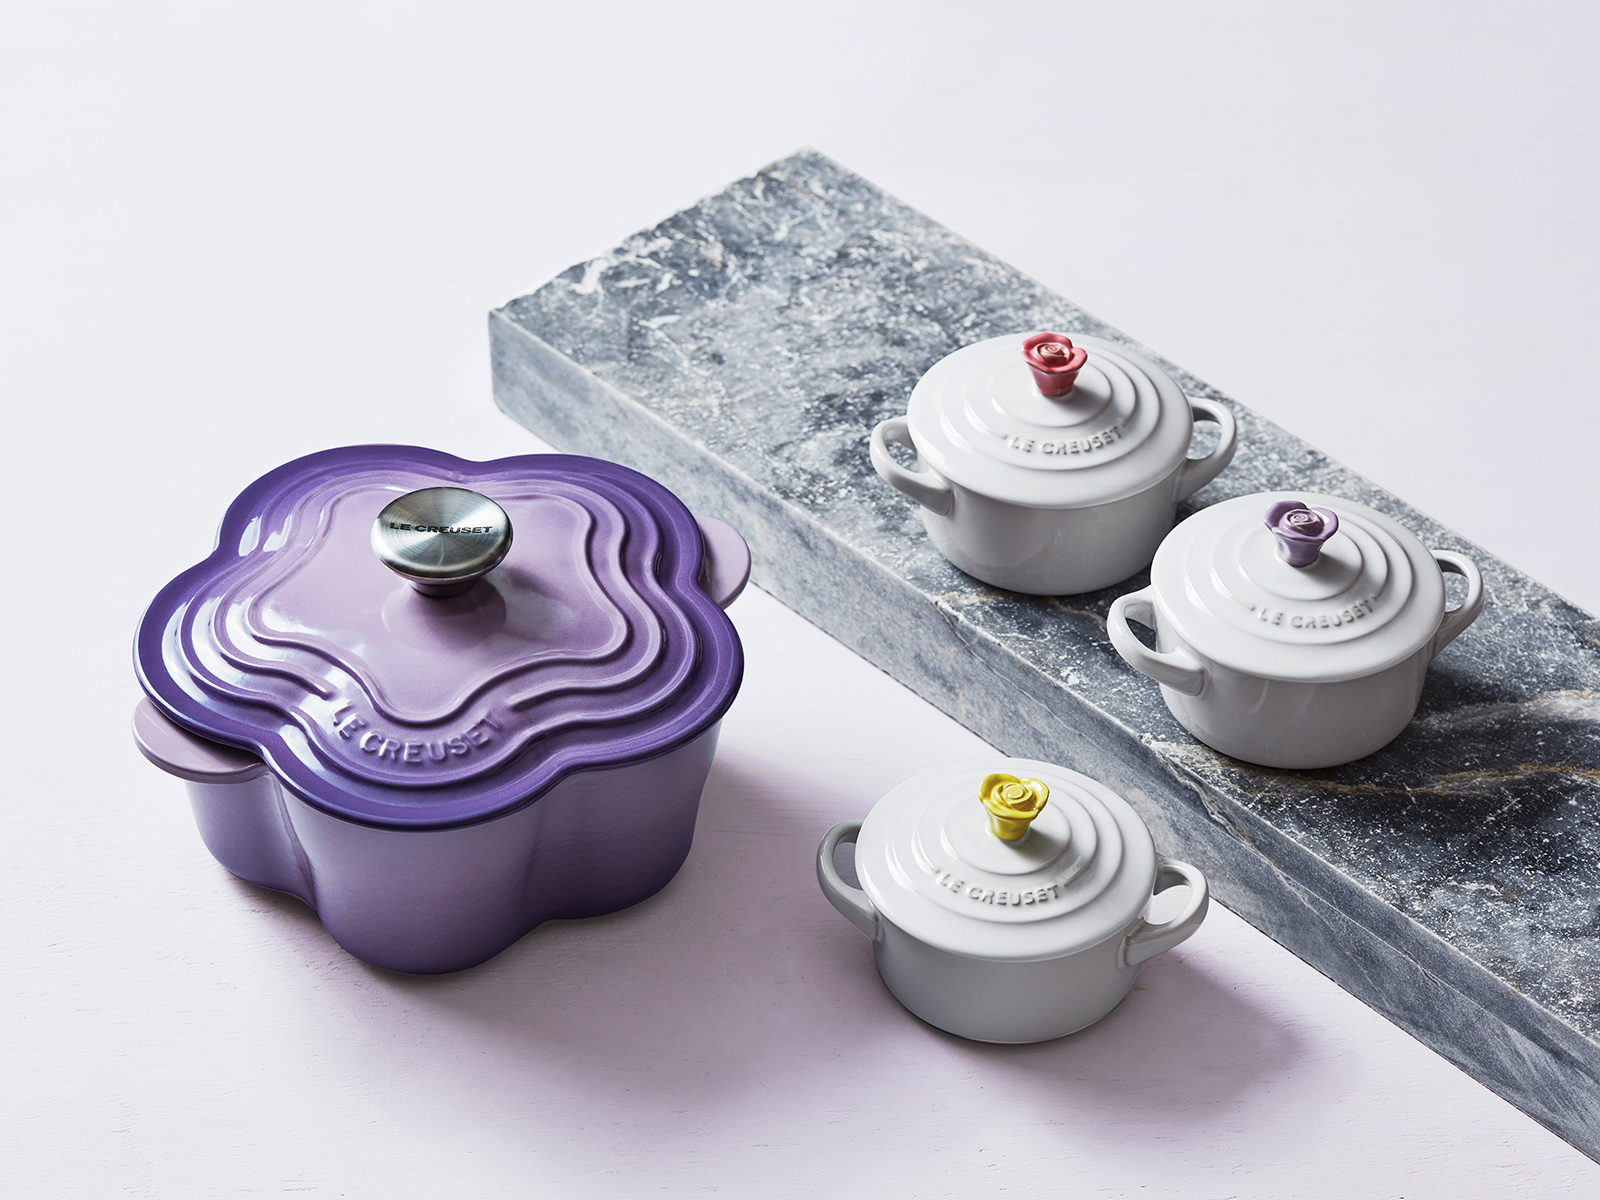 Provence flower cocottes from le creuset spring collection